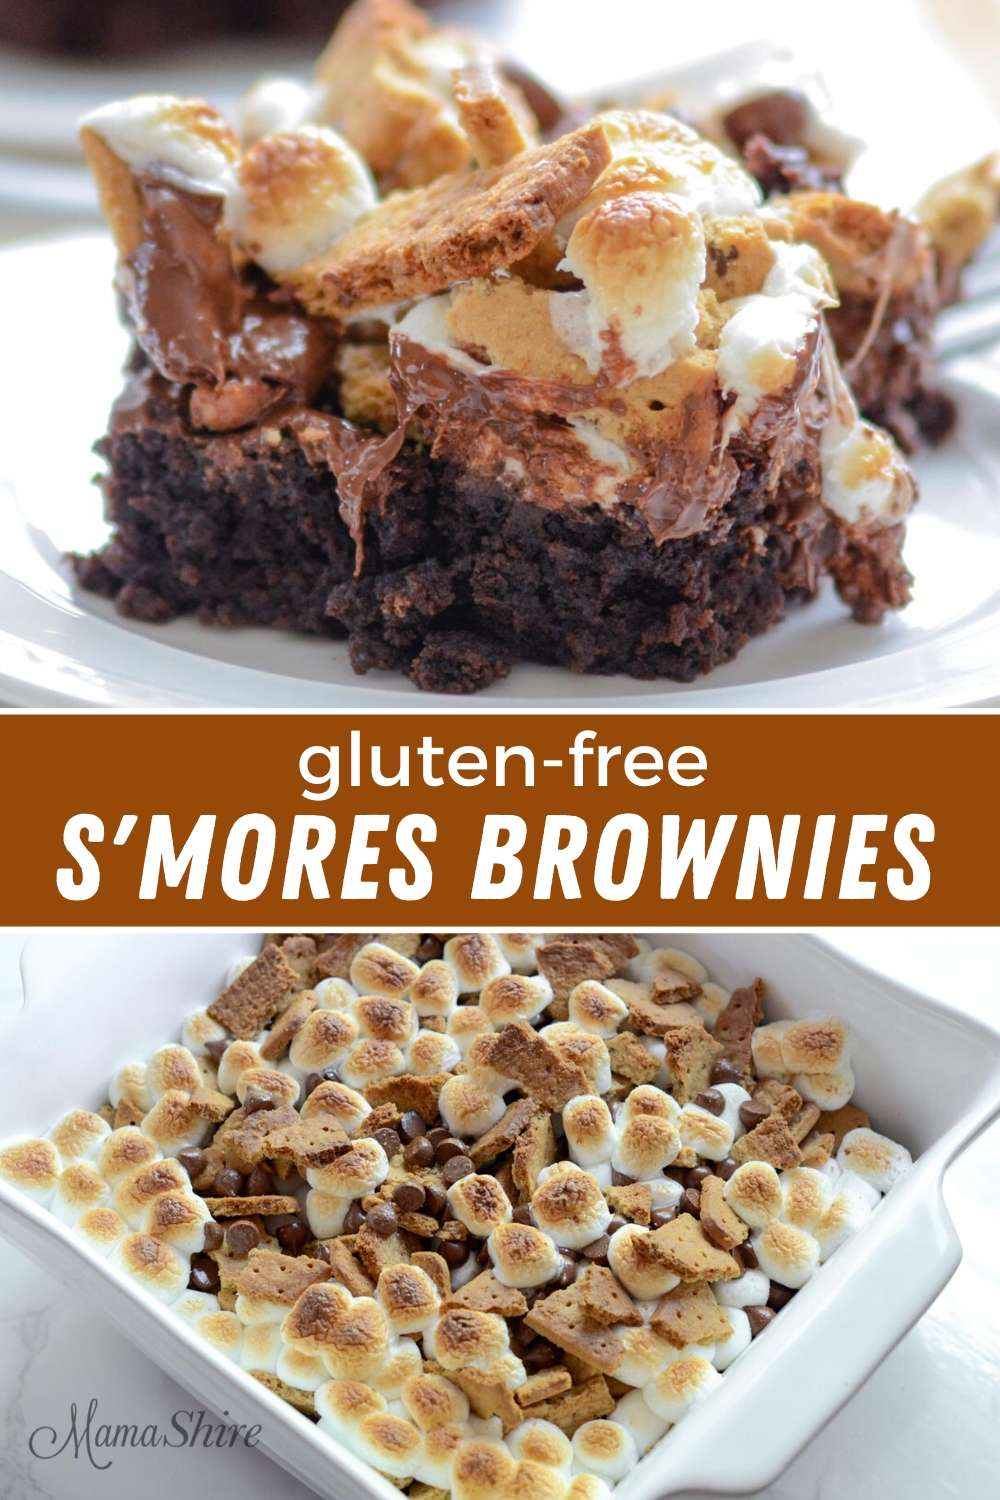 The top picture is a serving of gluten-free s'mores brownies. The bottom picture is the gluten-free smores brownies right out of the oven with the tops of the marshmallow browned.